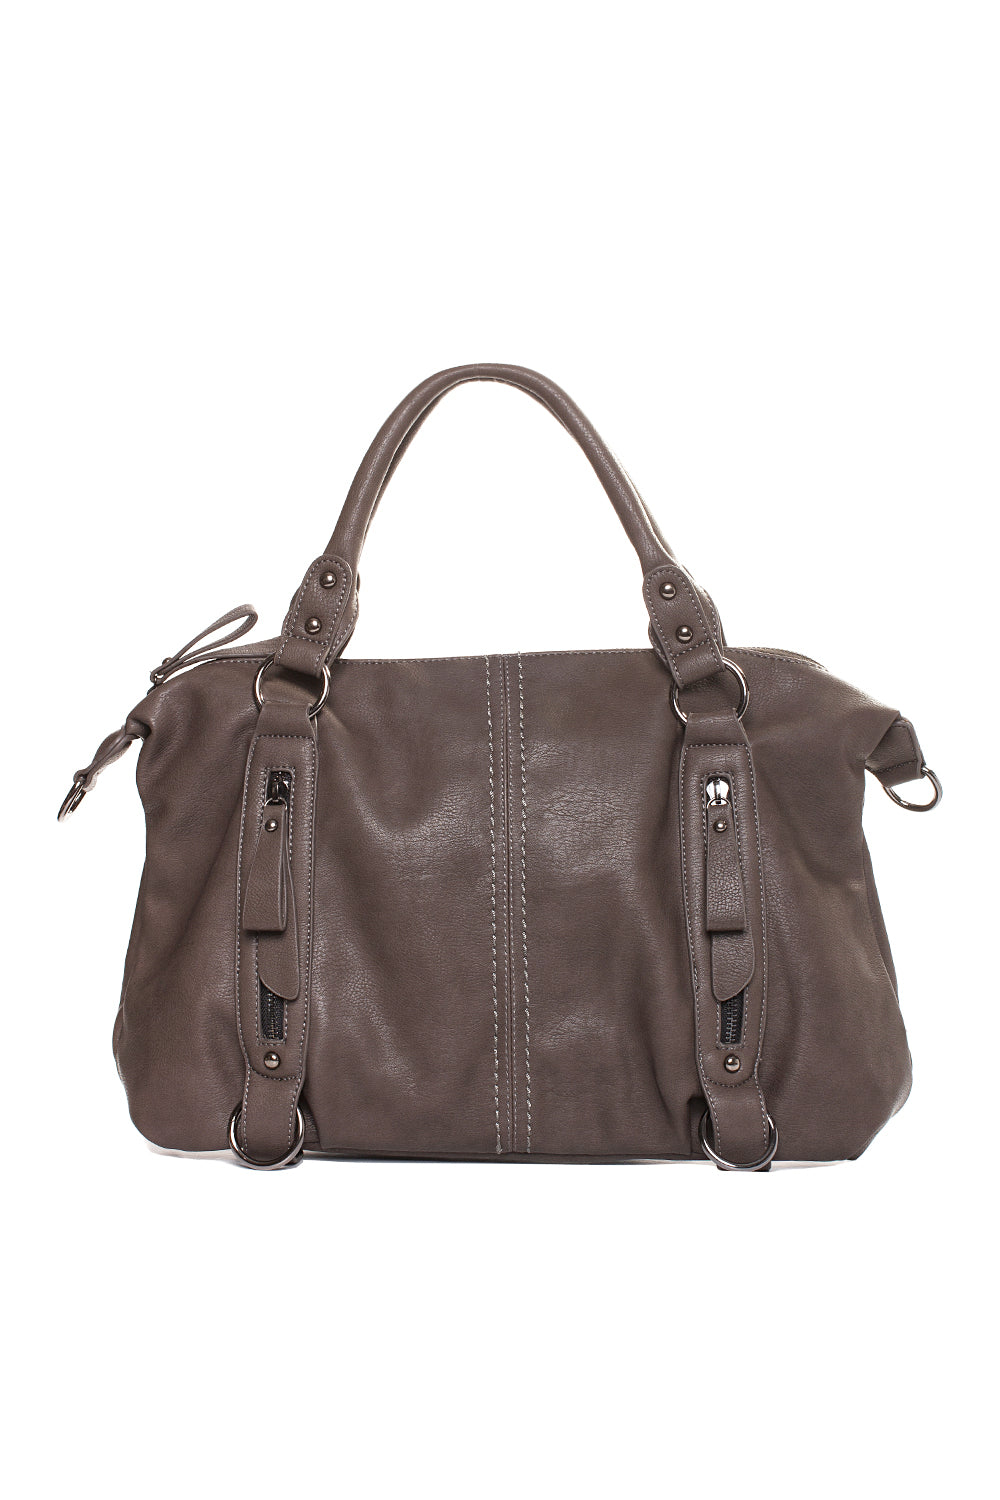 Type 2 Carry All Handbag